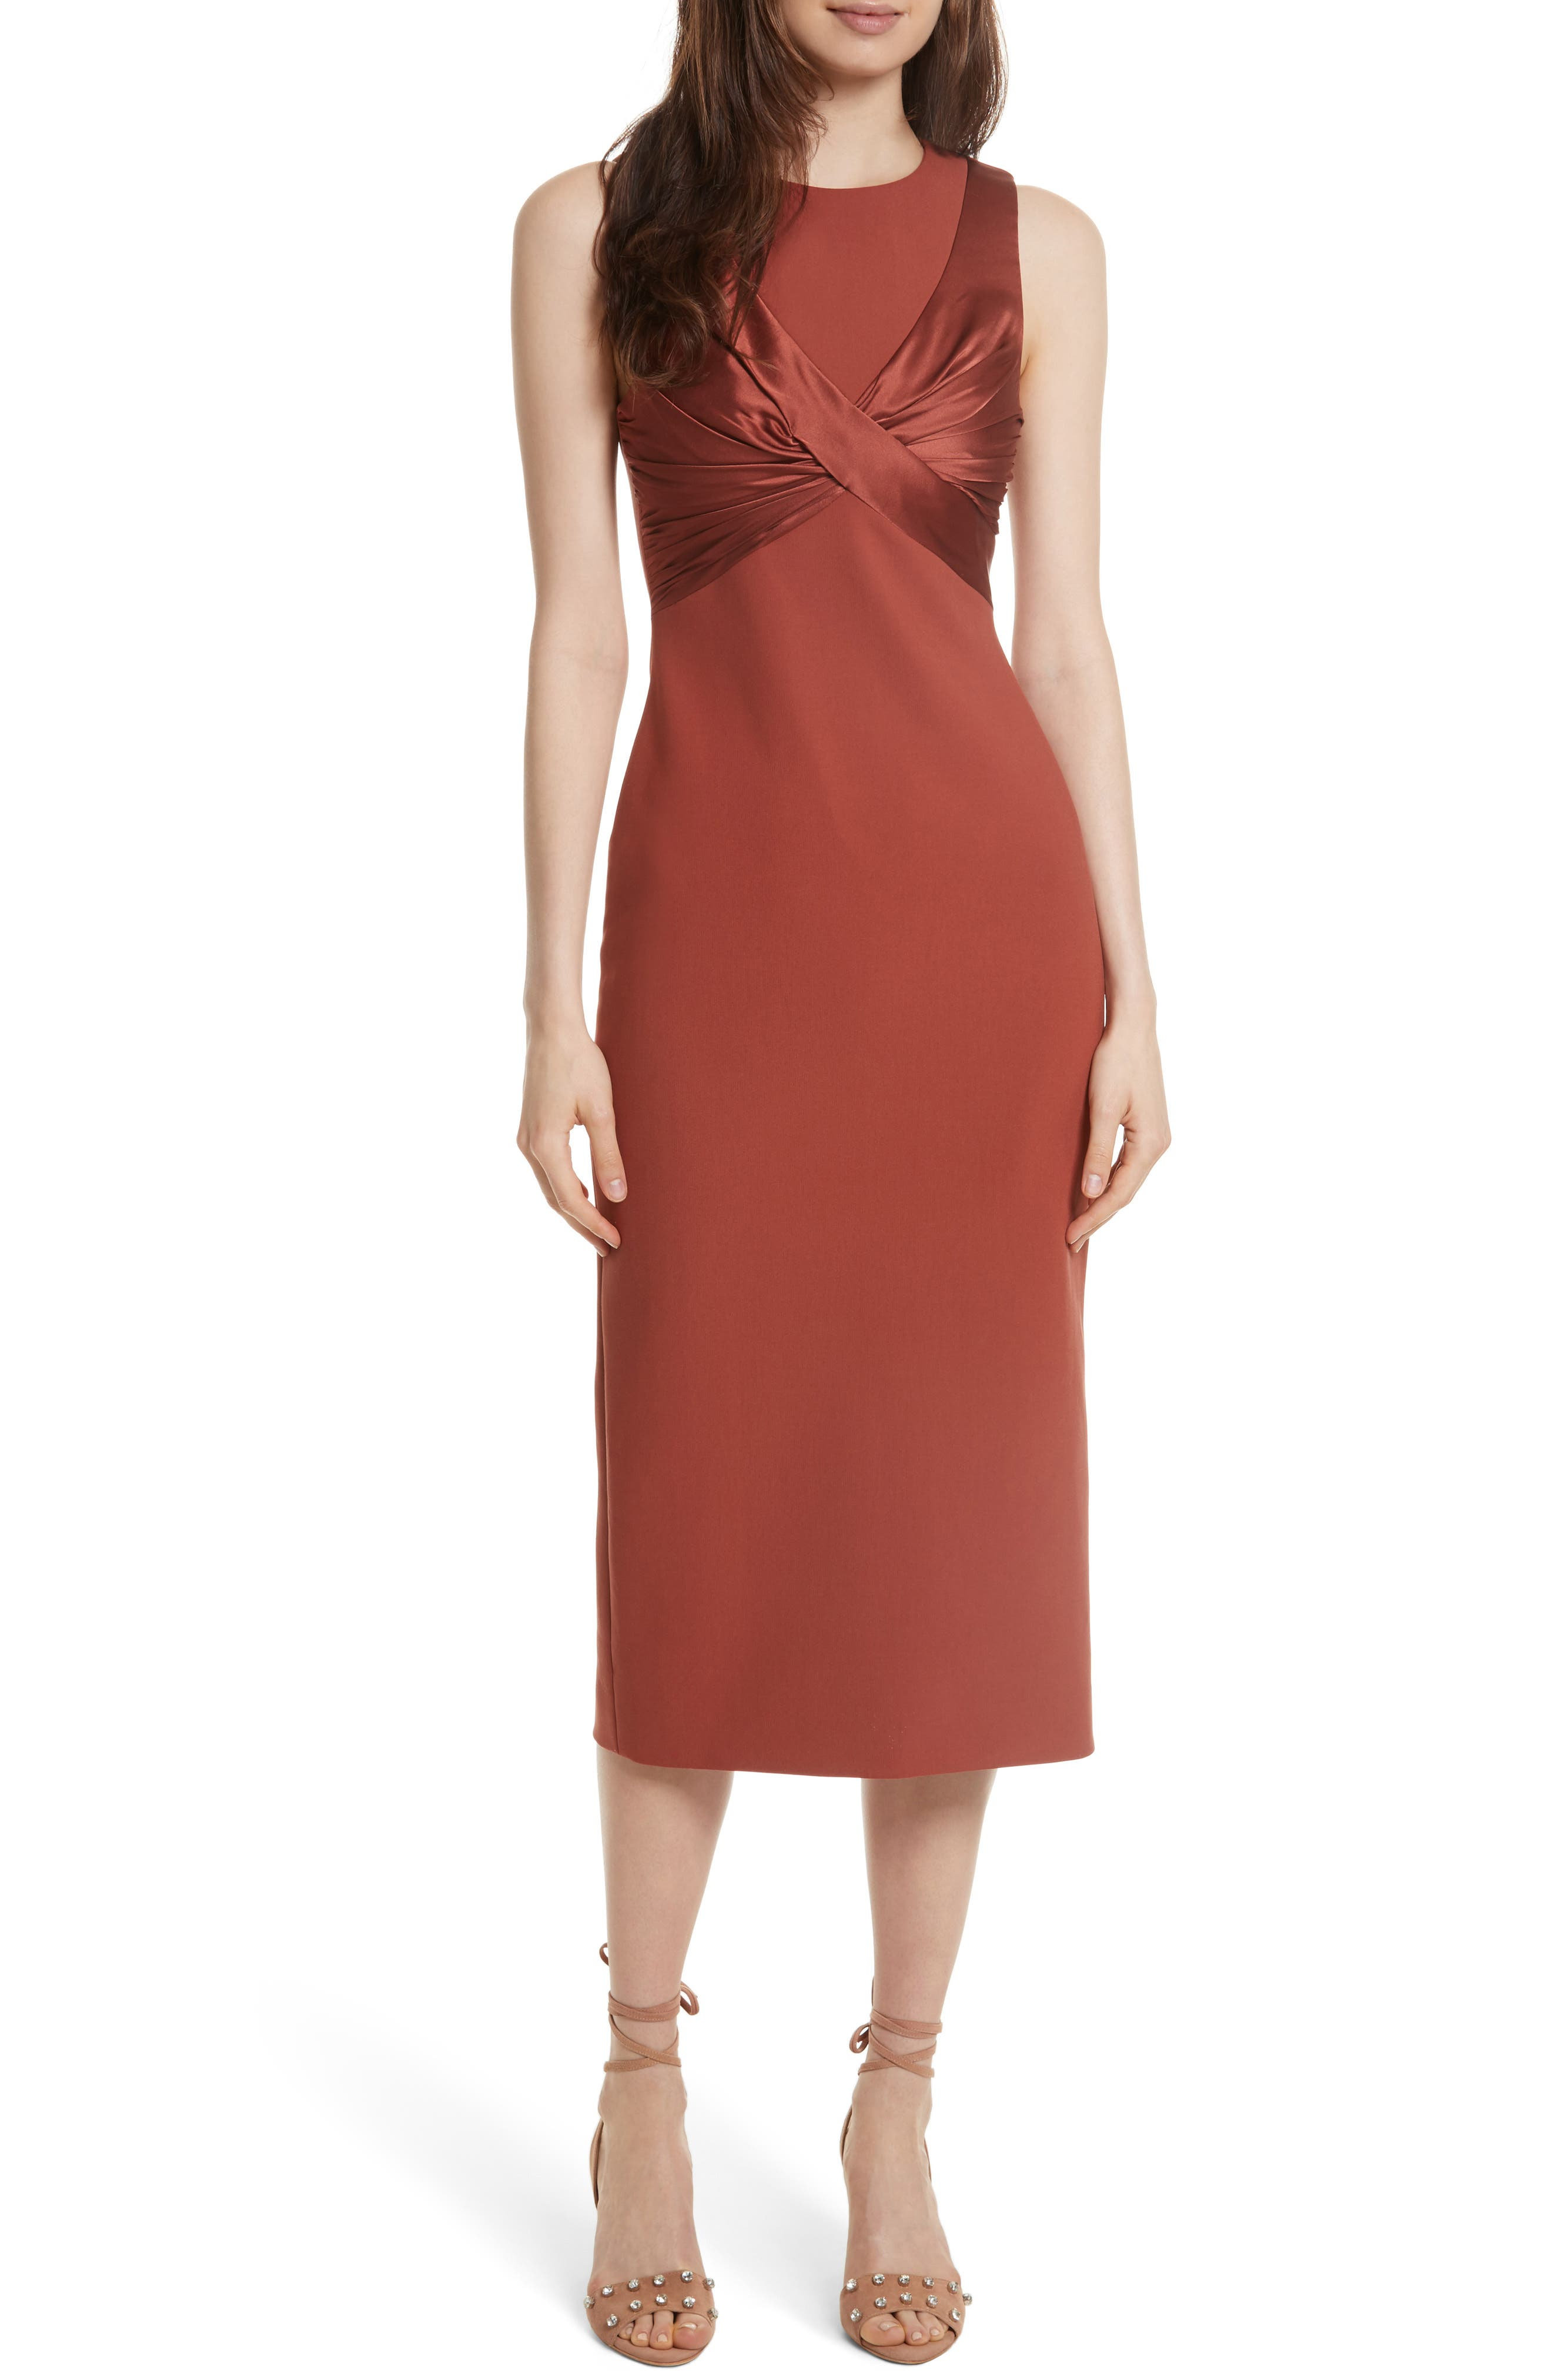 Cinq à Sept Adelise Crossover Sleeveless Sheath Dress